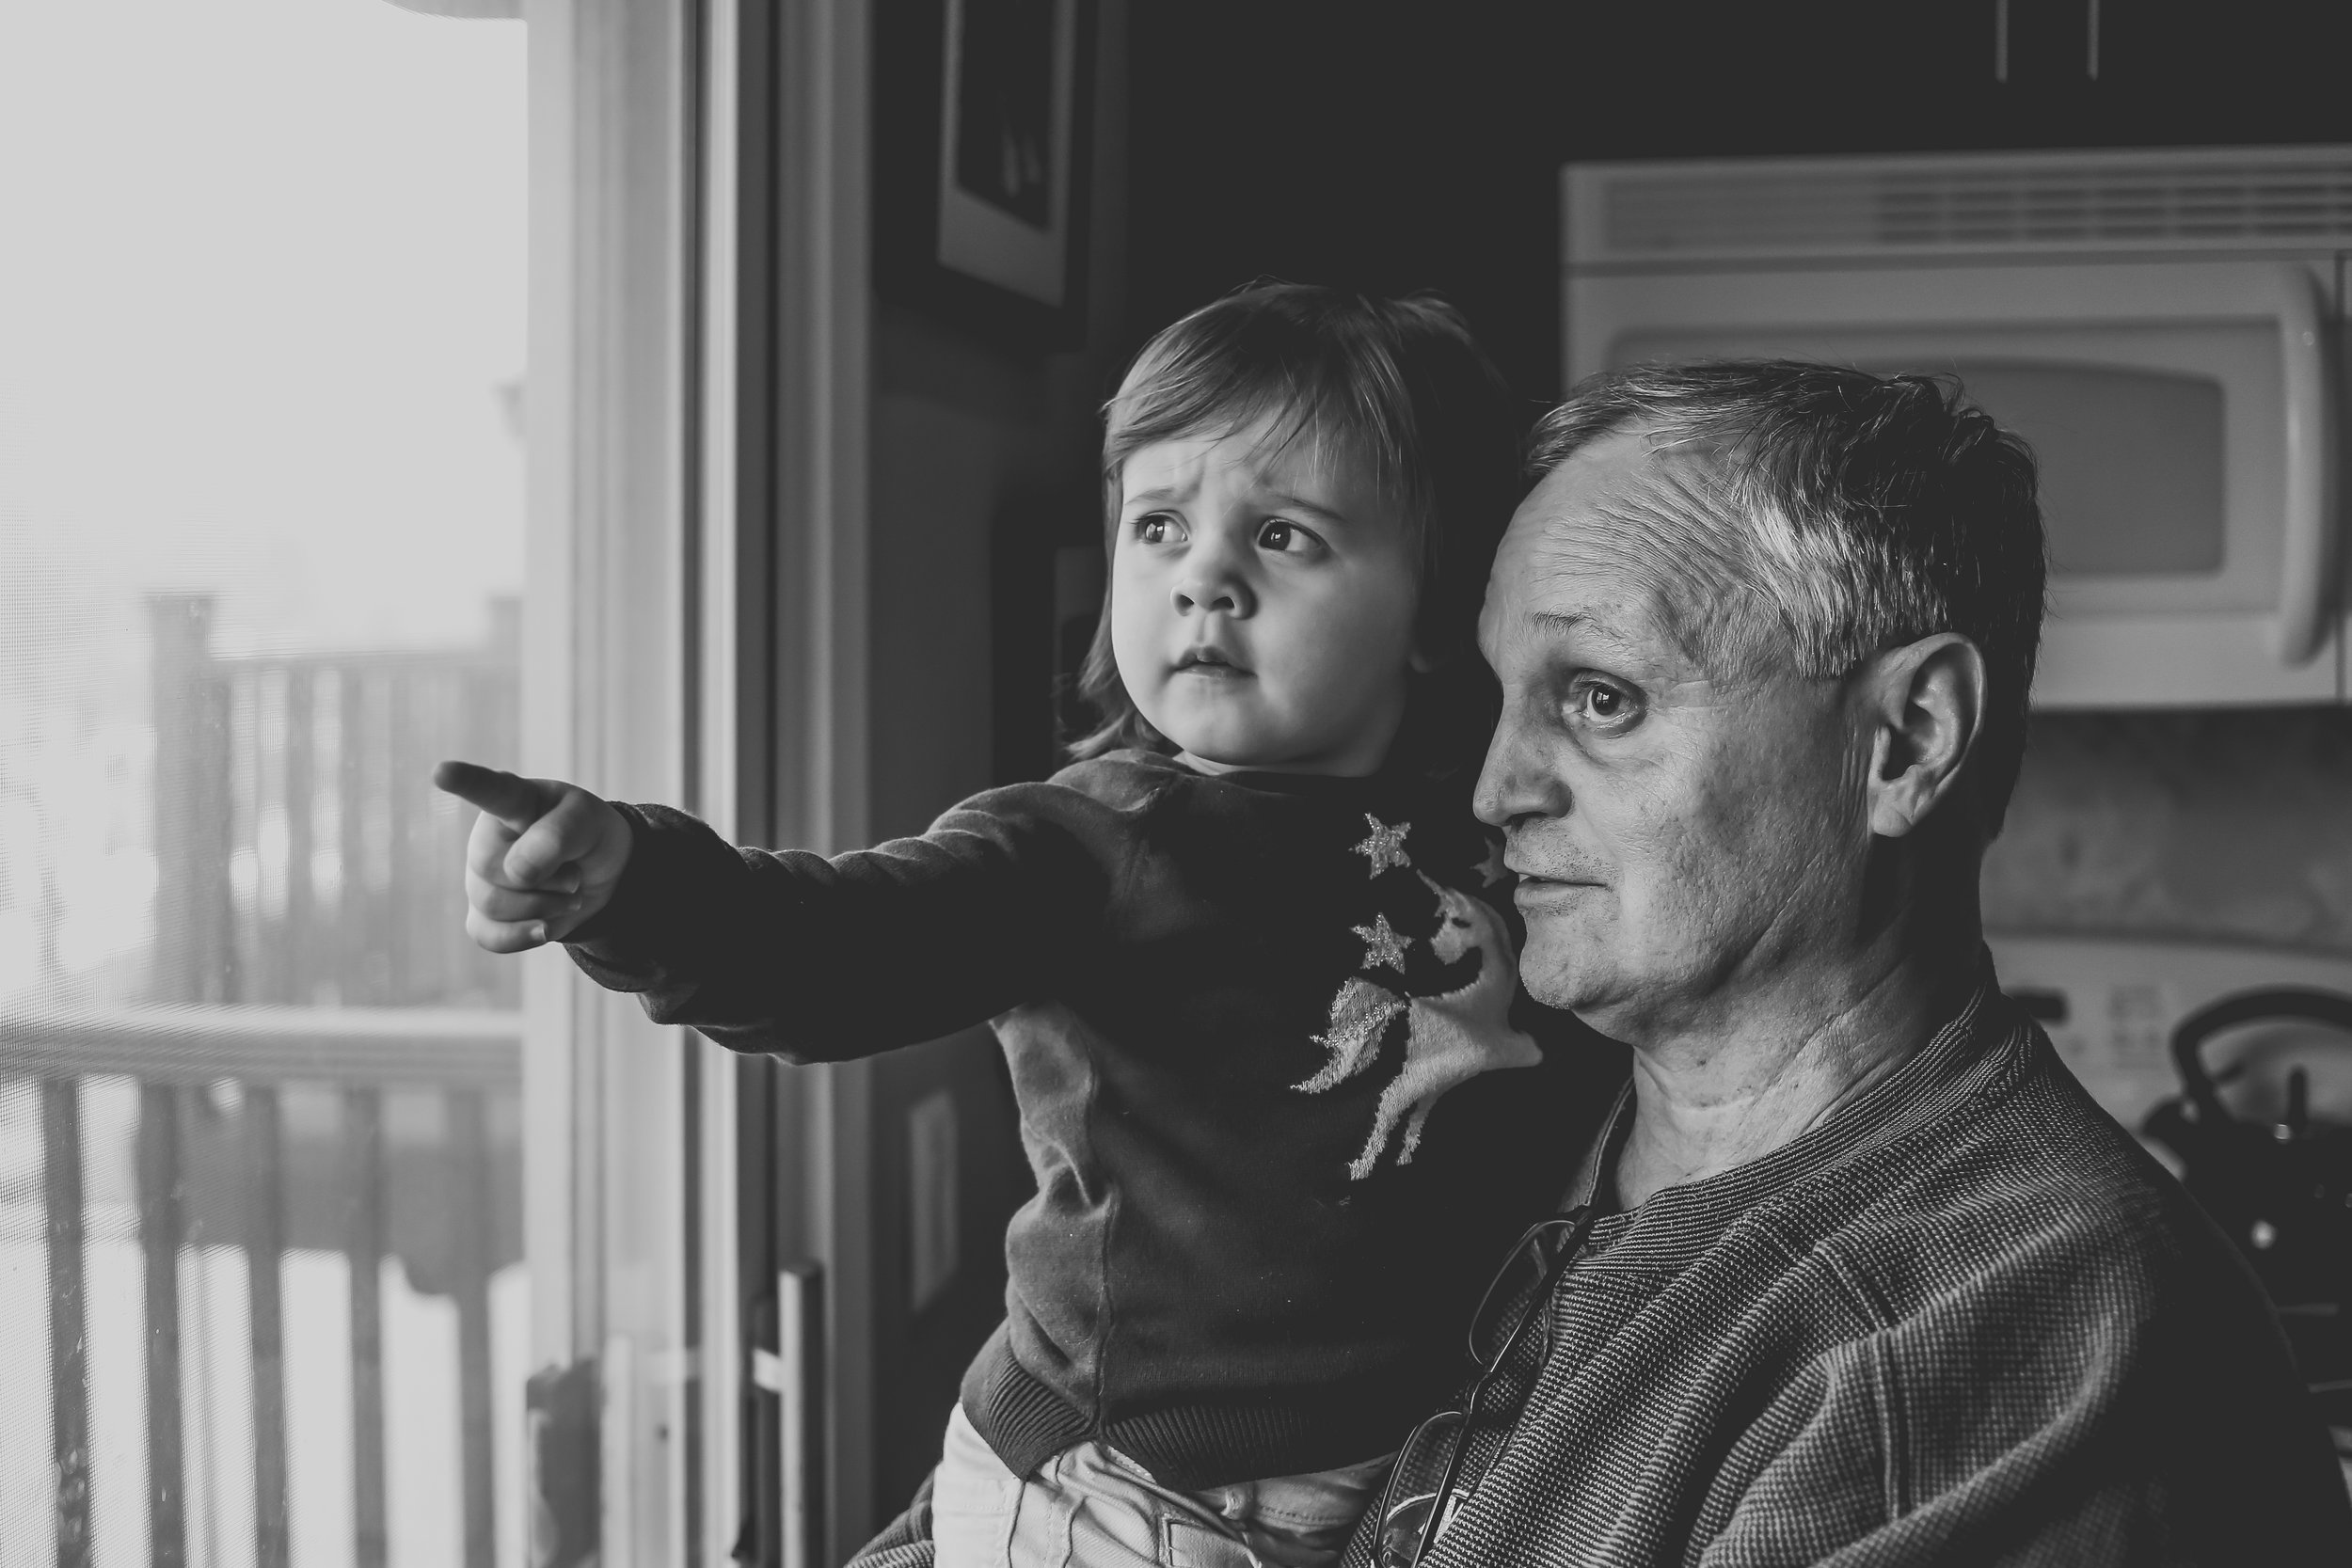 Toddler girl looking out the window with Grandpa, Lehigh Valley documentary family photography session.